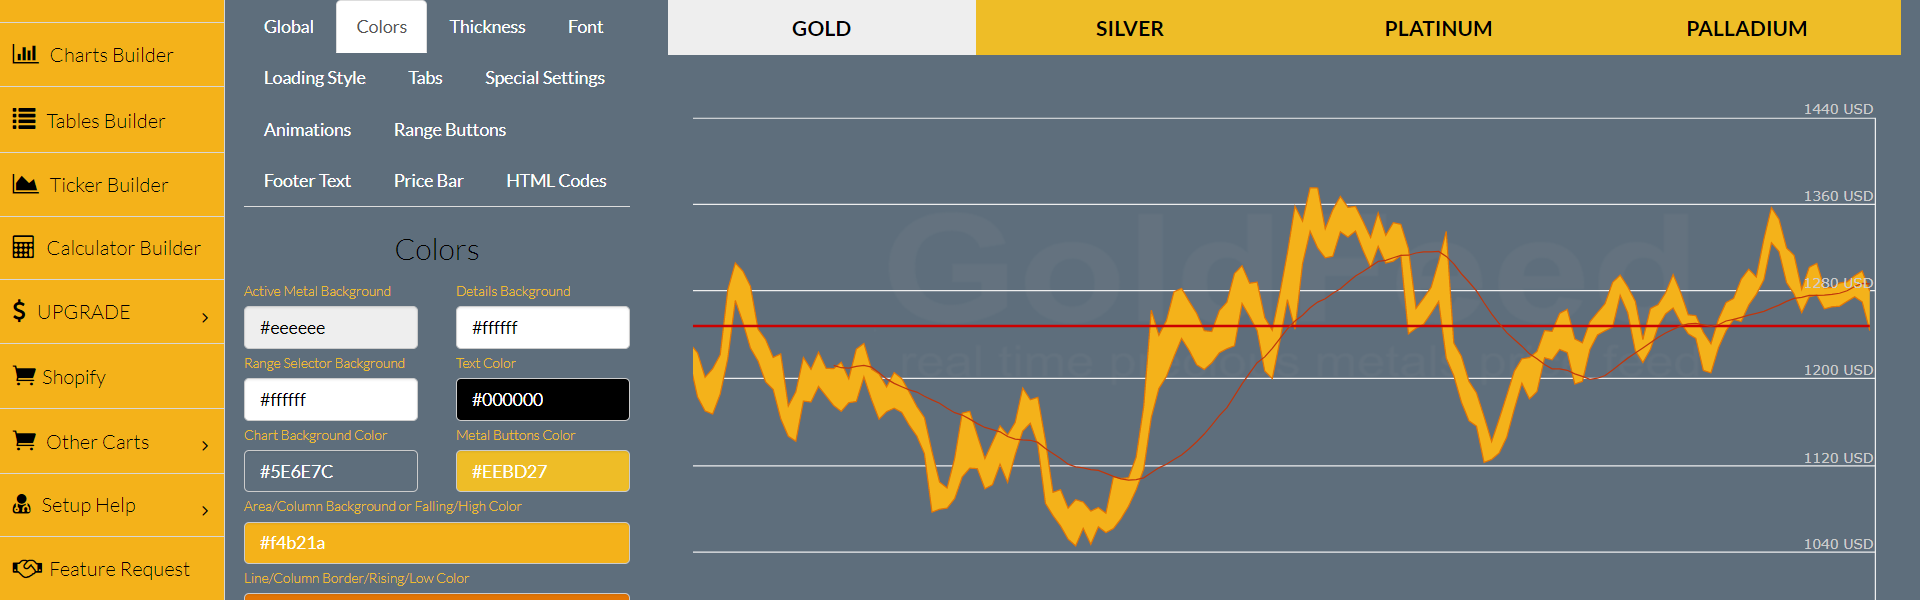 Real time spot gold, silver for precious metals websites, bullion and numismatics dealers.